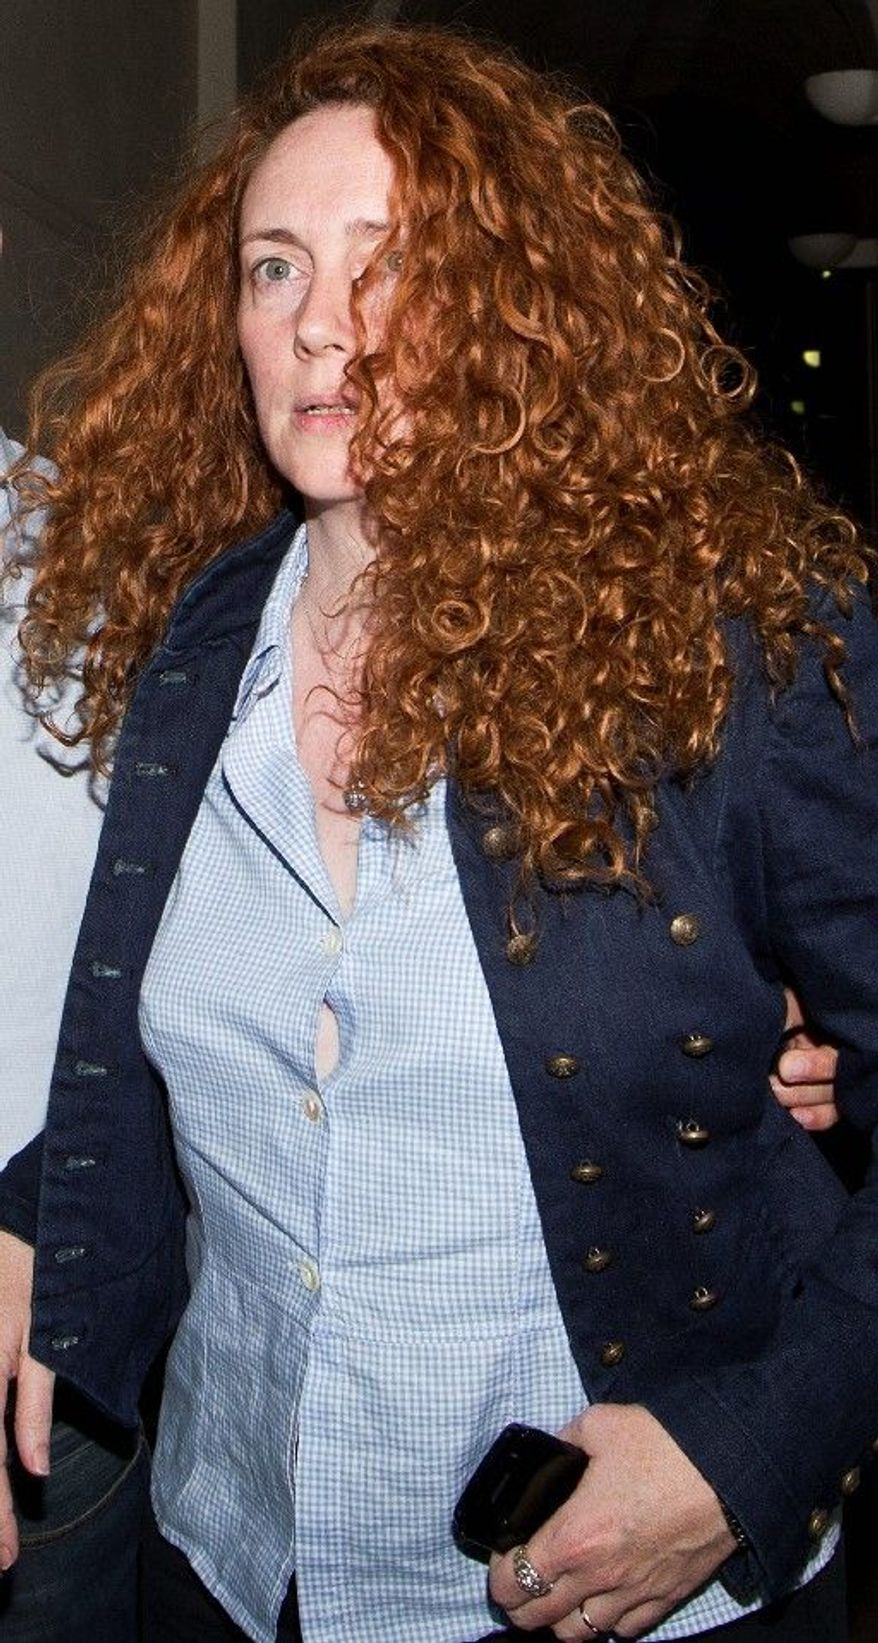 Rebekah Brooks, former British CEO of News Corp., was arrested in London and is being questioned about suspected phone hacking and corruption activities. (Associated Press)